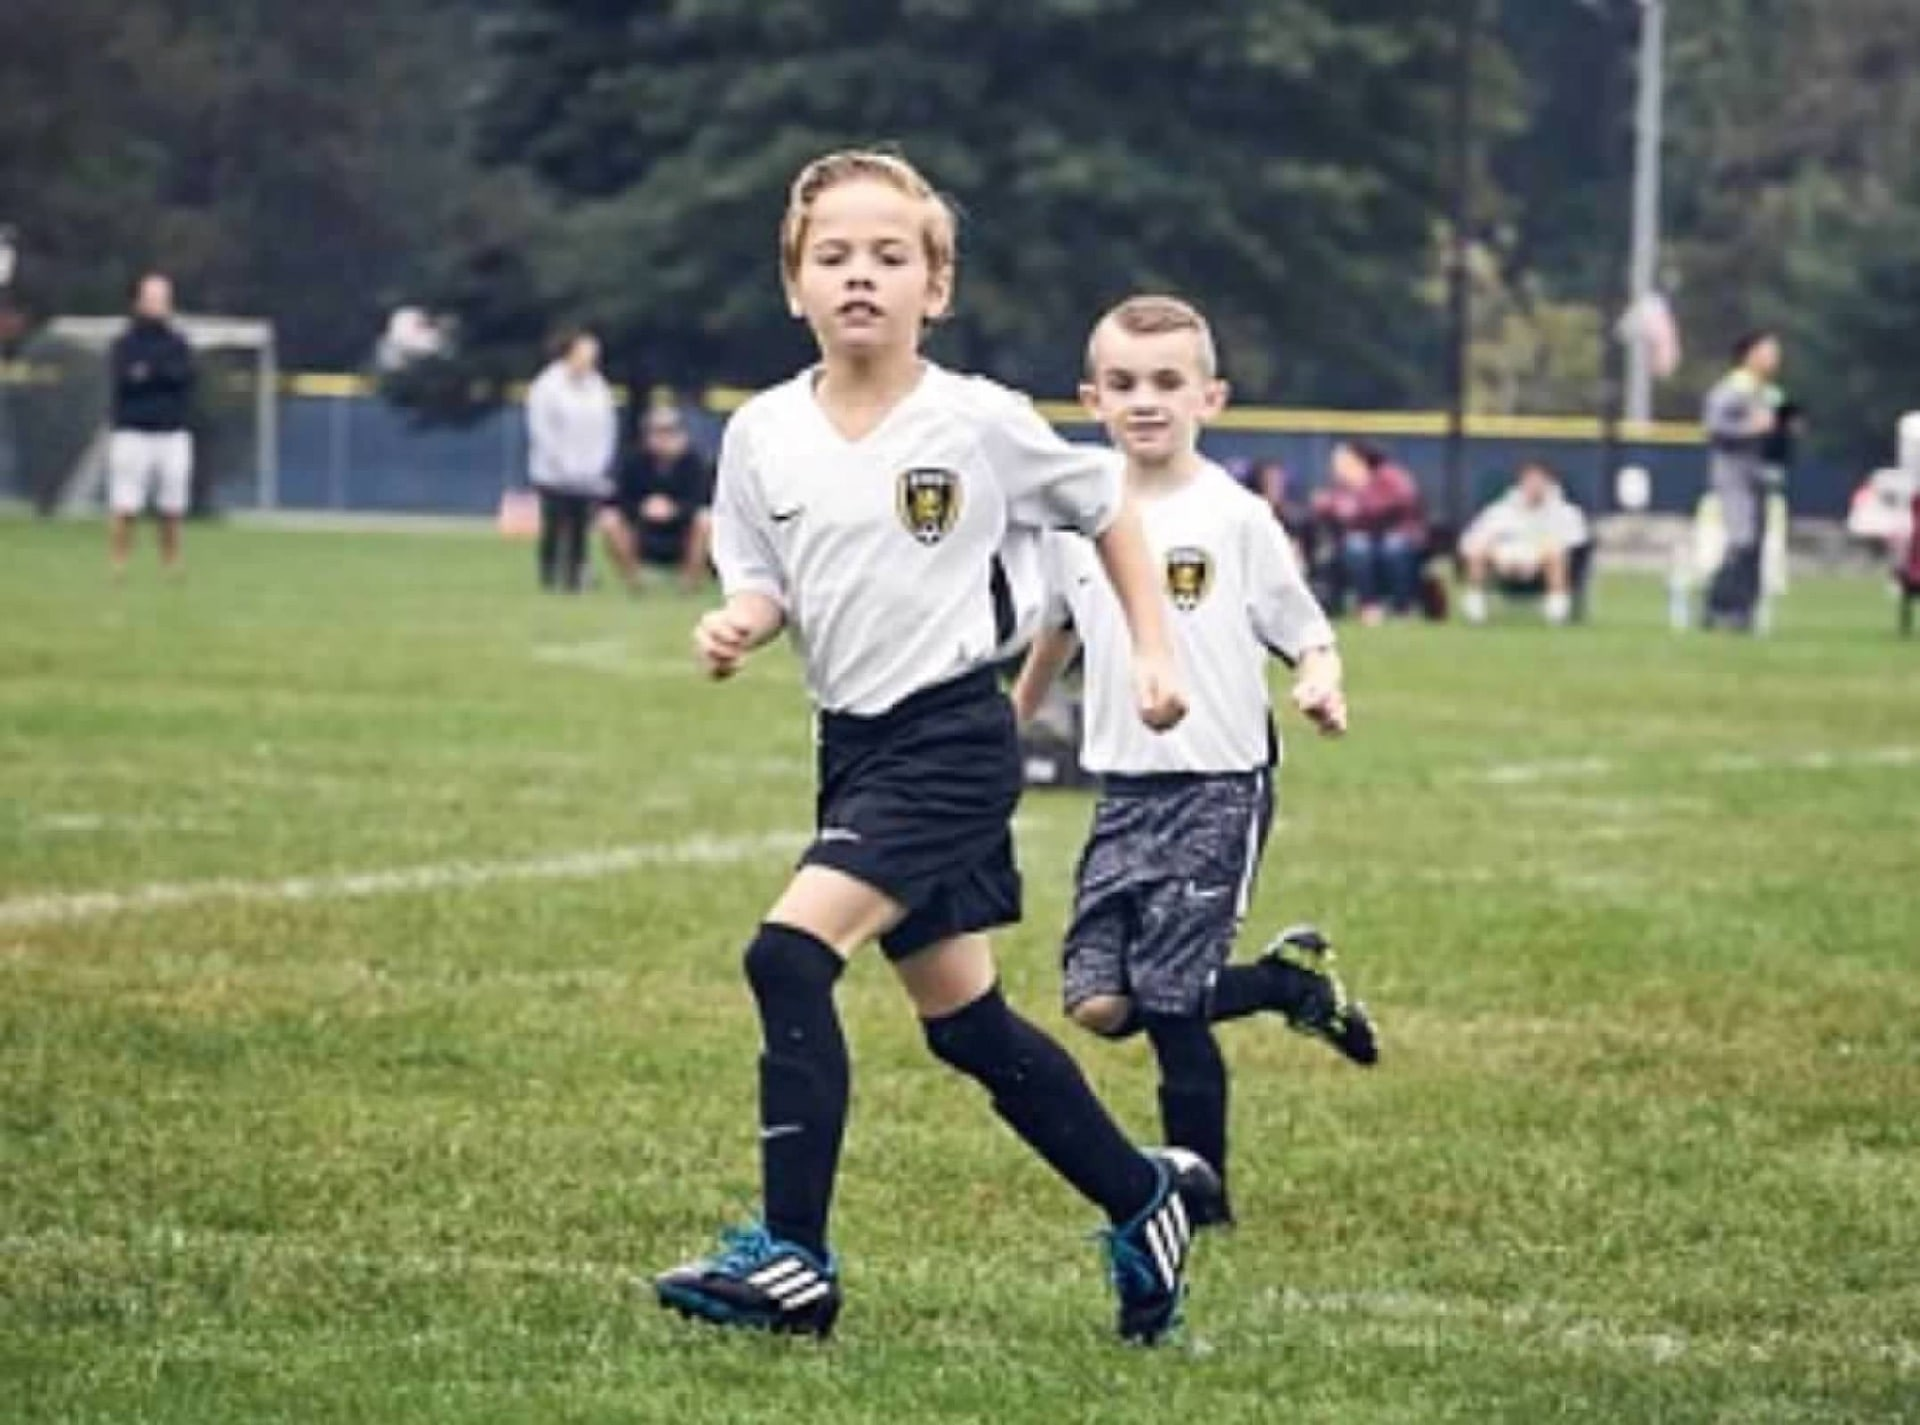 Premier Youth Soccer Clubs Capital Region